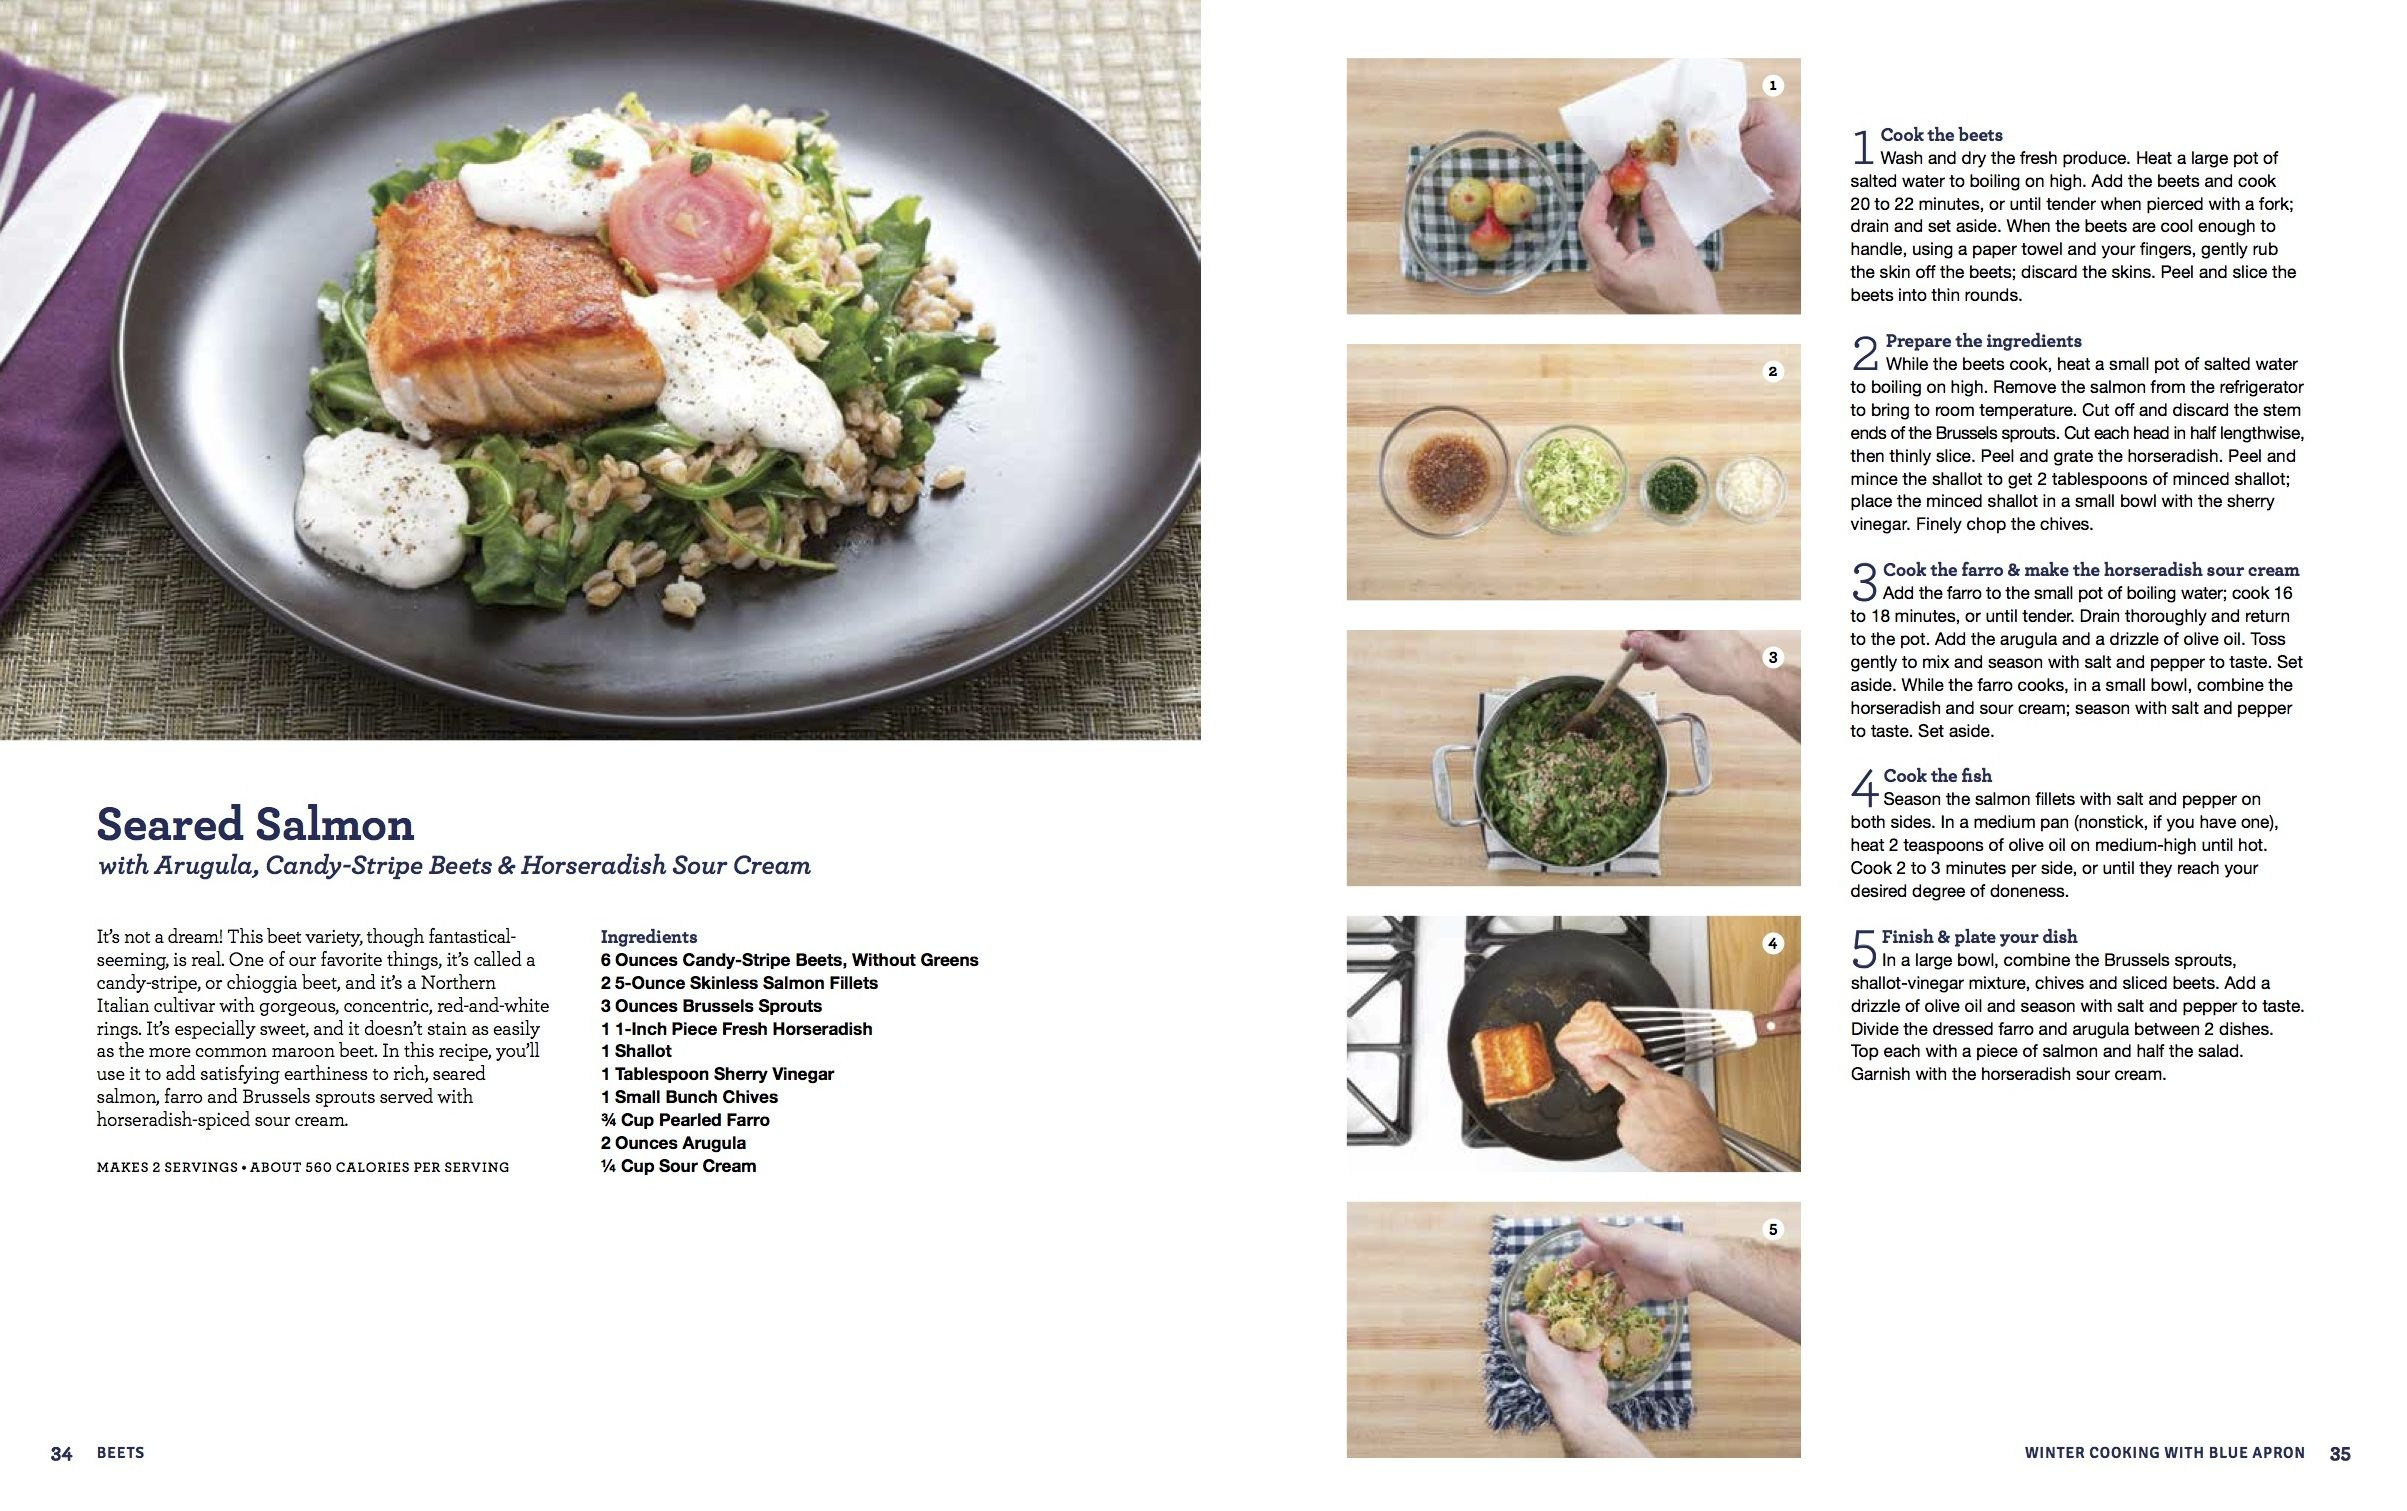 Blue apron recipes pdf dolapgnetband blue apron recipes pdf wintersproduce food forumfinder Image collections